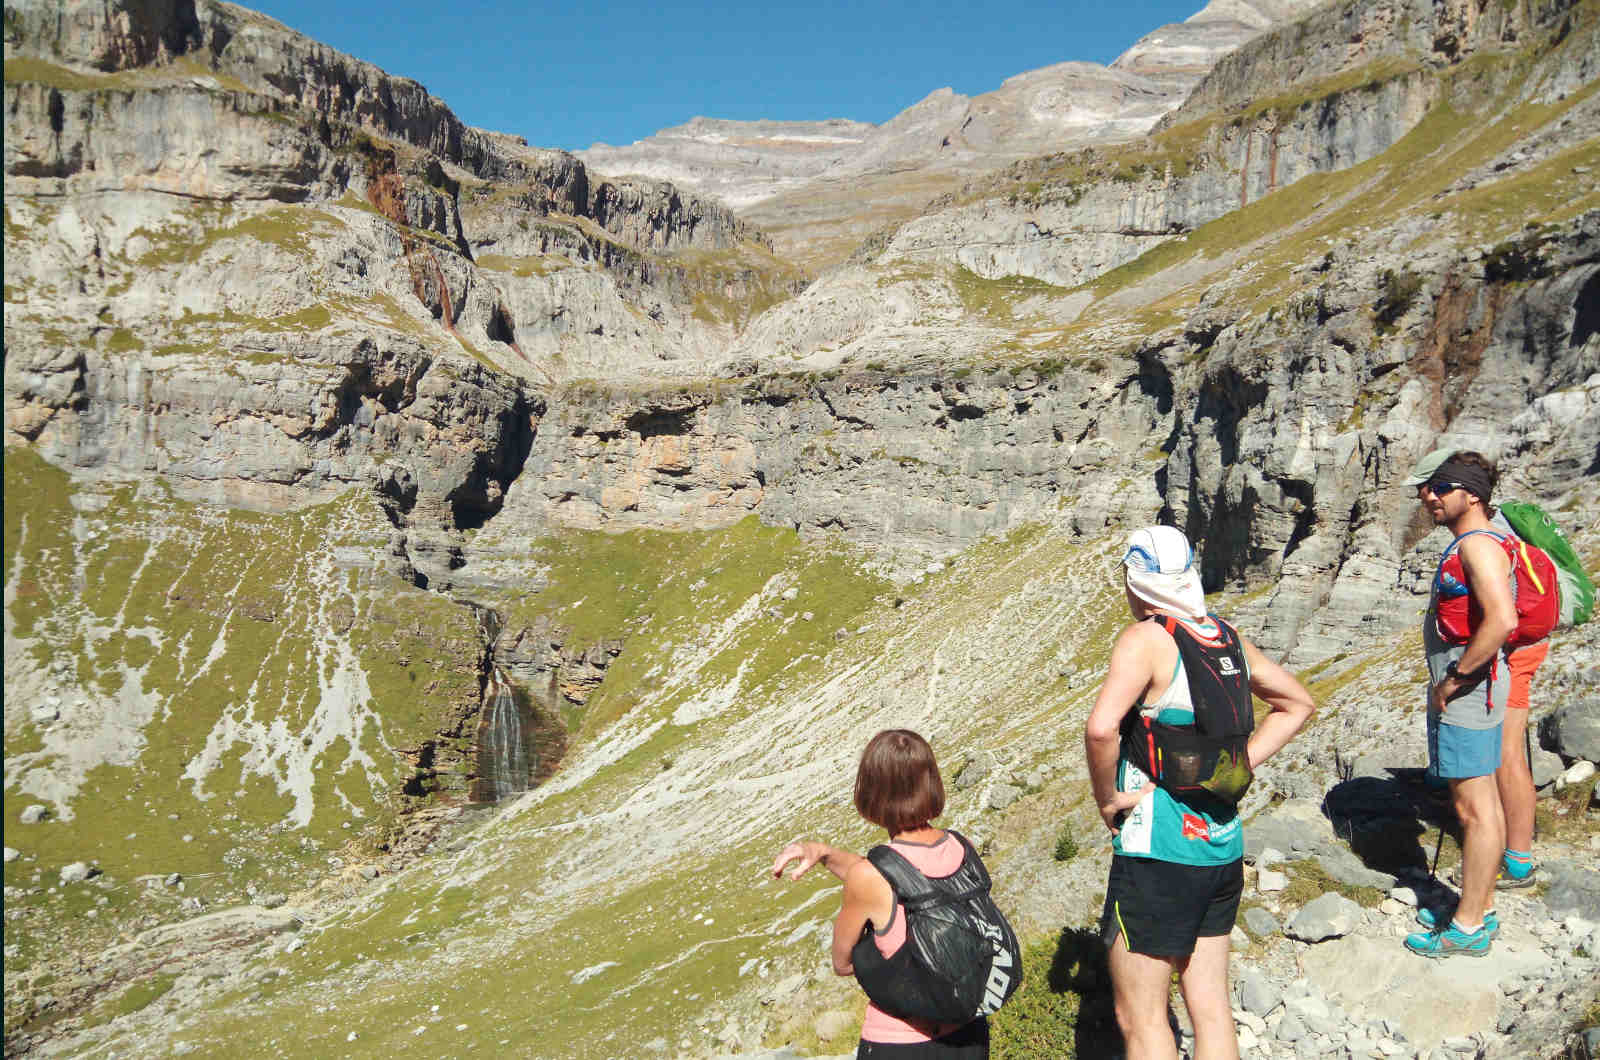 A group of trail runners pause to look at the horse tail falls from a high pathway in the Ordesa National Park in the Spanish Pyrenees on our Trail Running Holiday